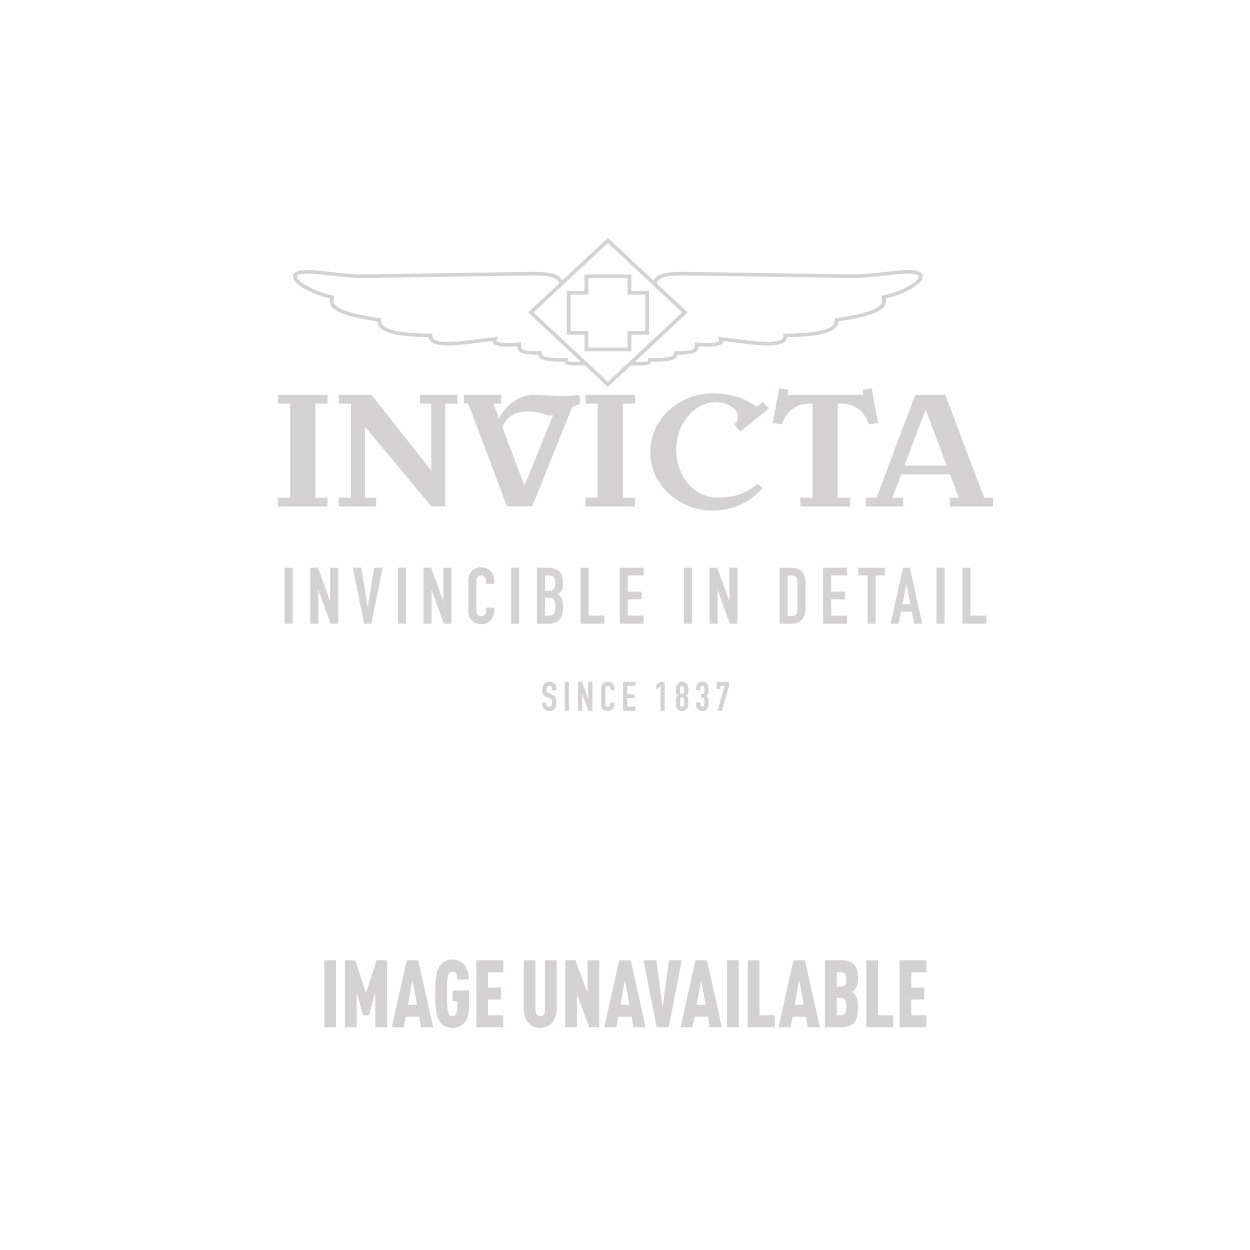 Invicta Lupah Swiss Made Quartz Watch - Stainless Steel case with Charcoal tone Leather band - Model 90264